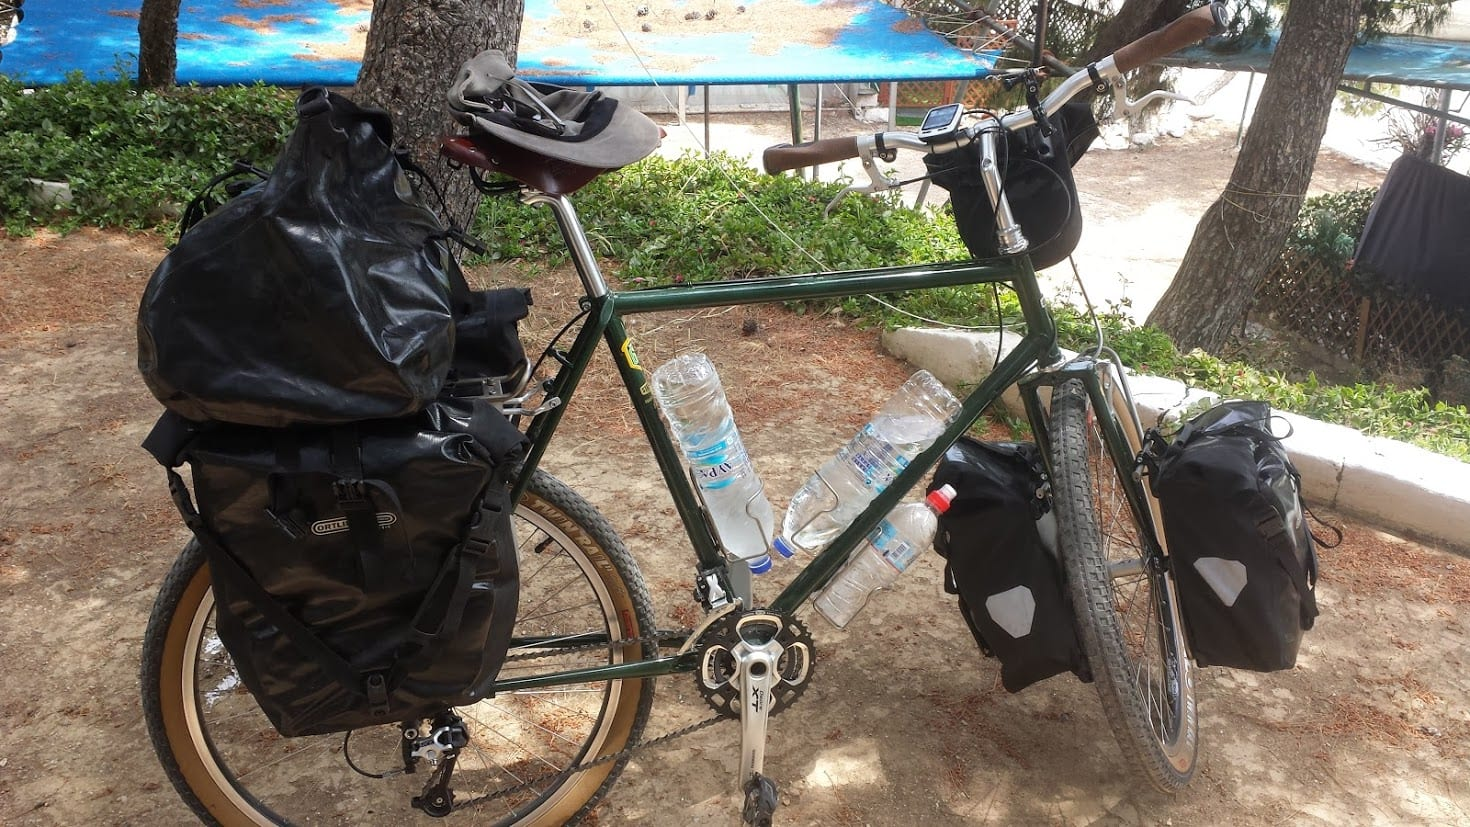 Fully loaded touring bicycle